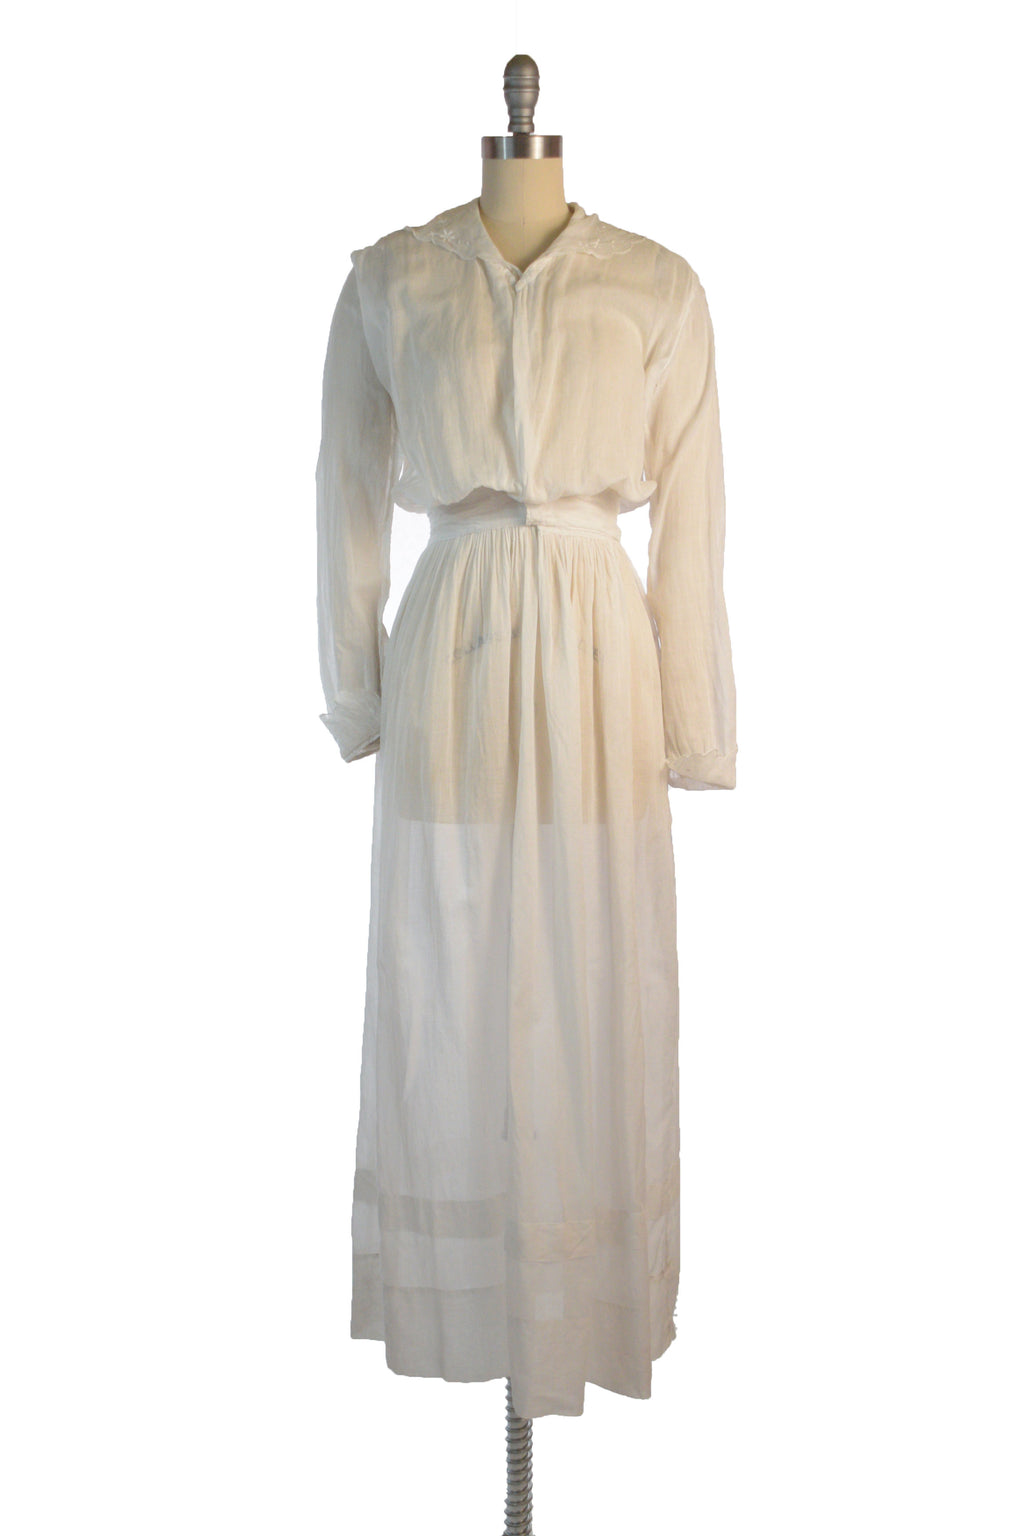 Simple, Lightweight 1910s Long Sleeved Cotton Lingerie Dress